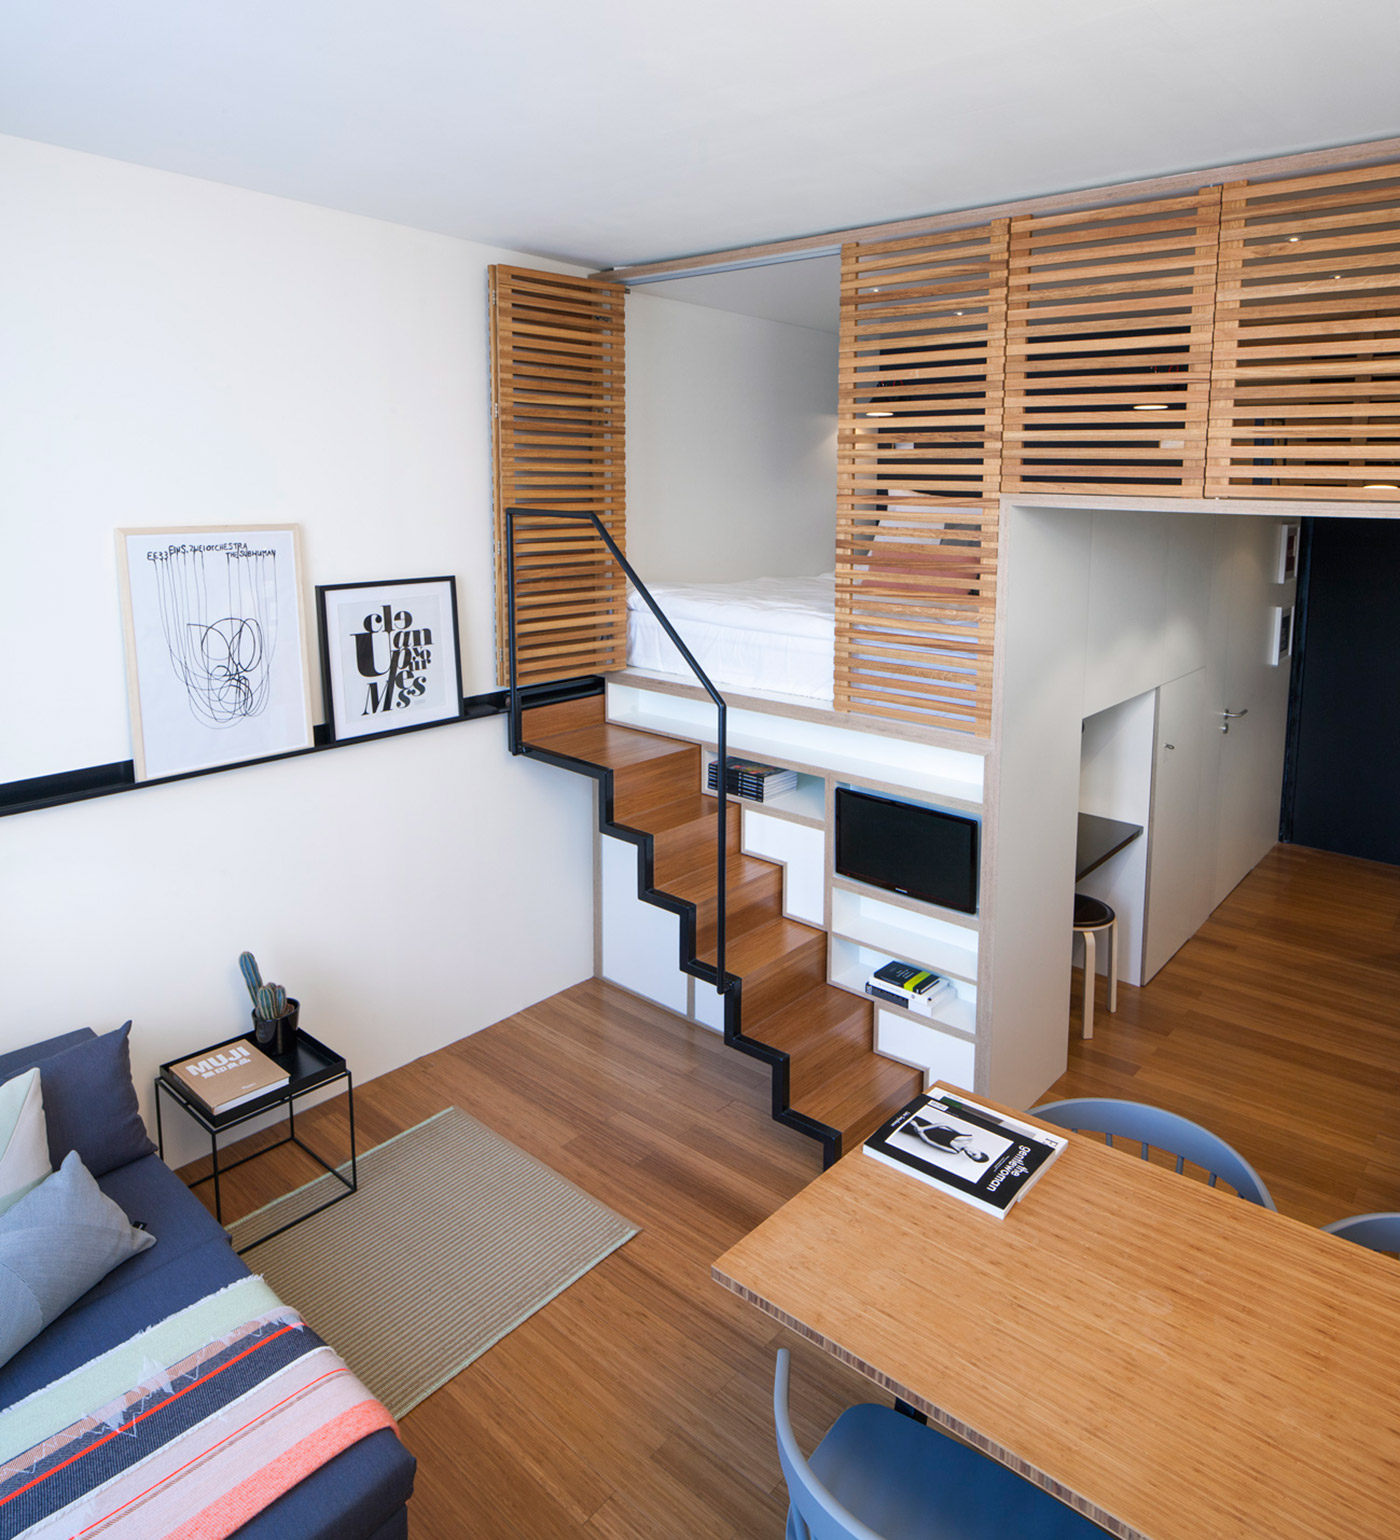 Studio Apartment: 4 Awesome Small Studio Apartments With Lofted Beds